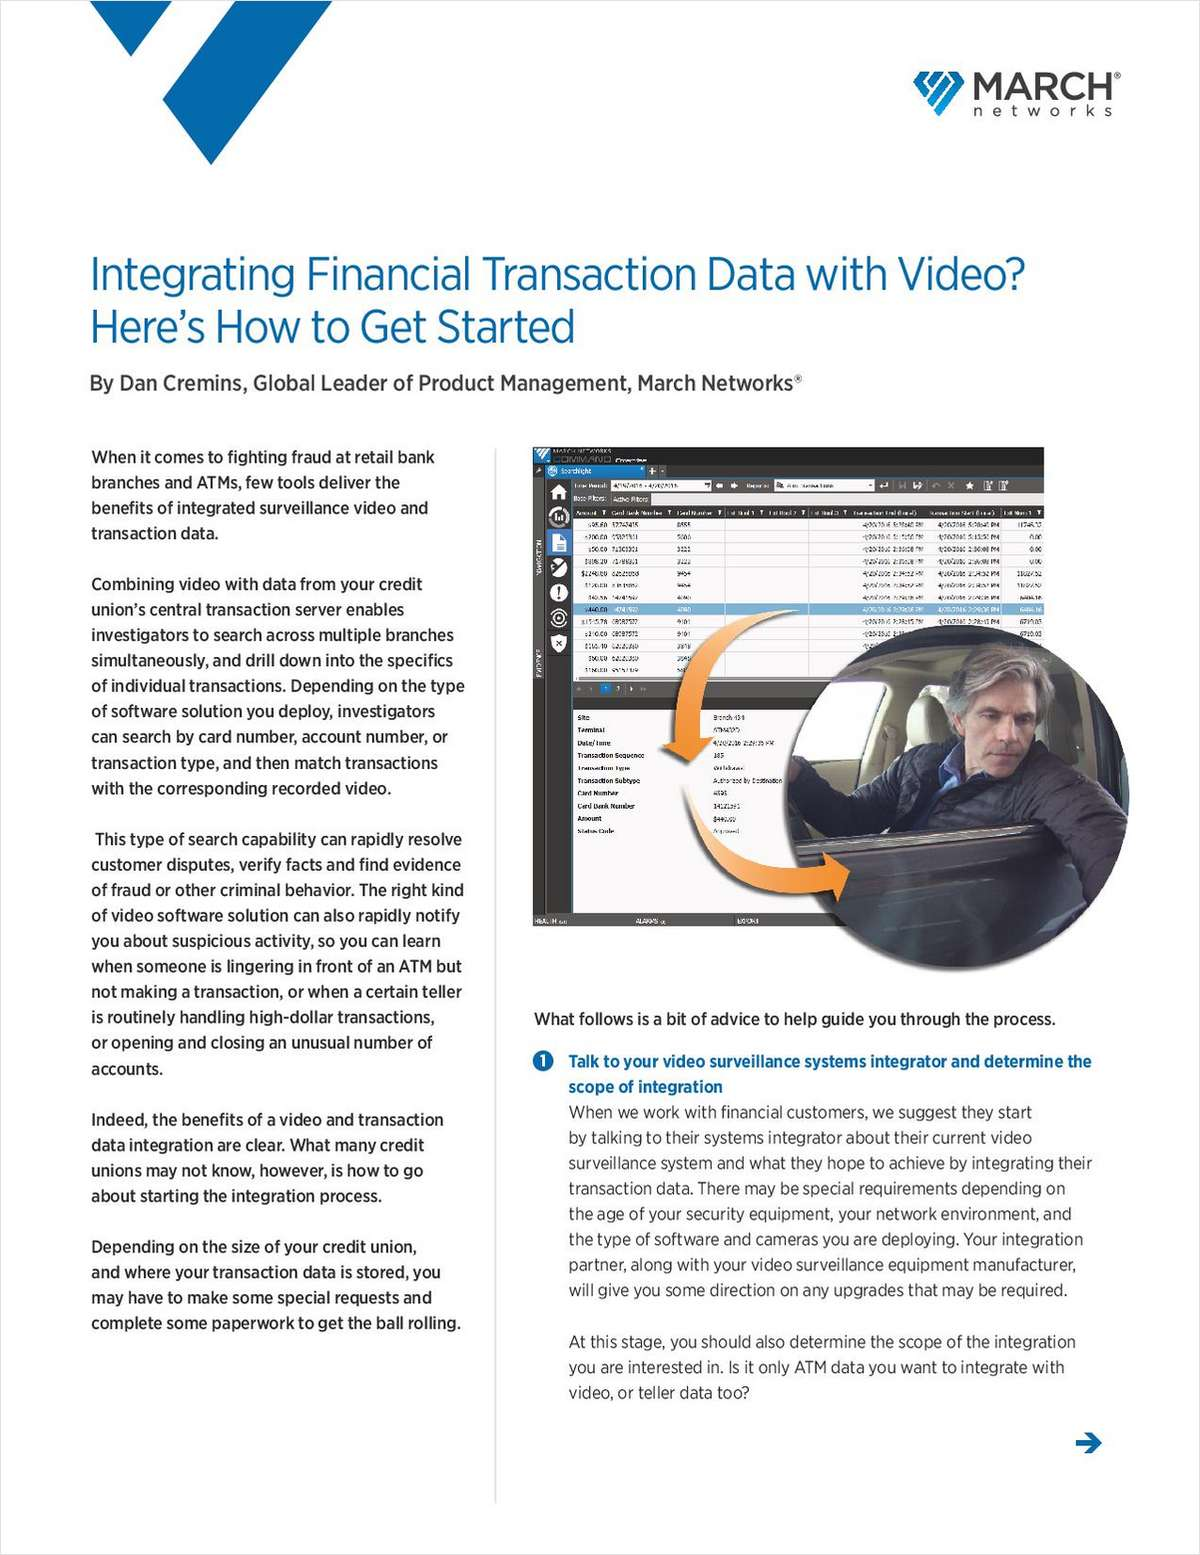 Tips to Help Your Credit Union Integrate Surveillance Video with Transaction Data